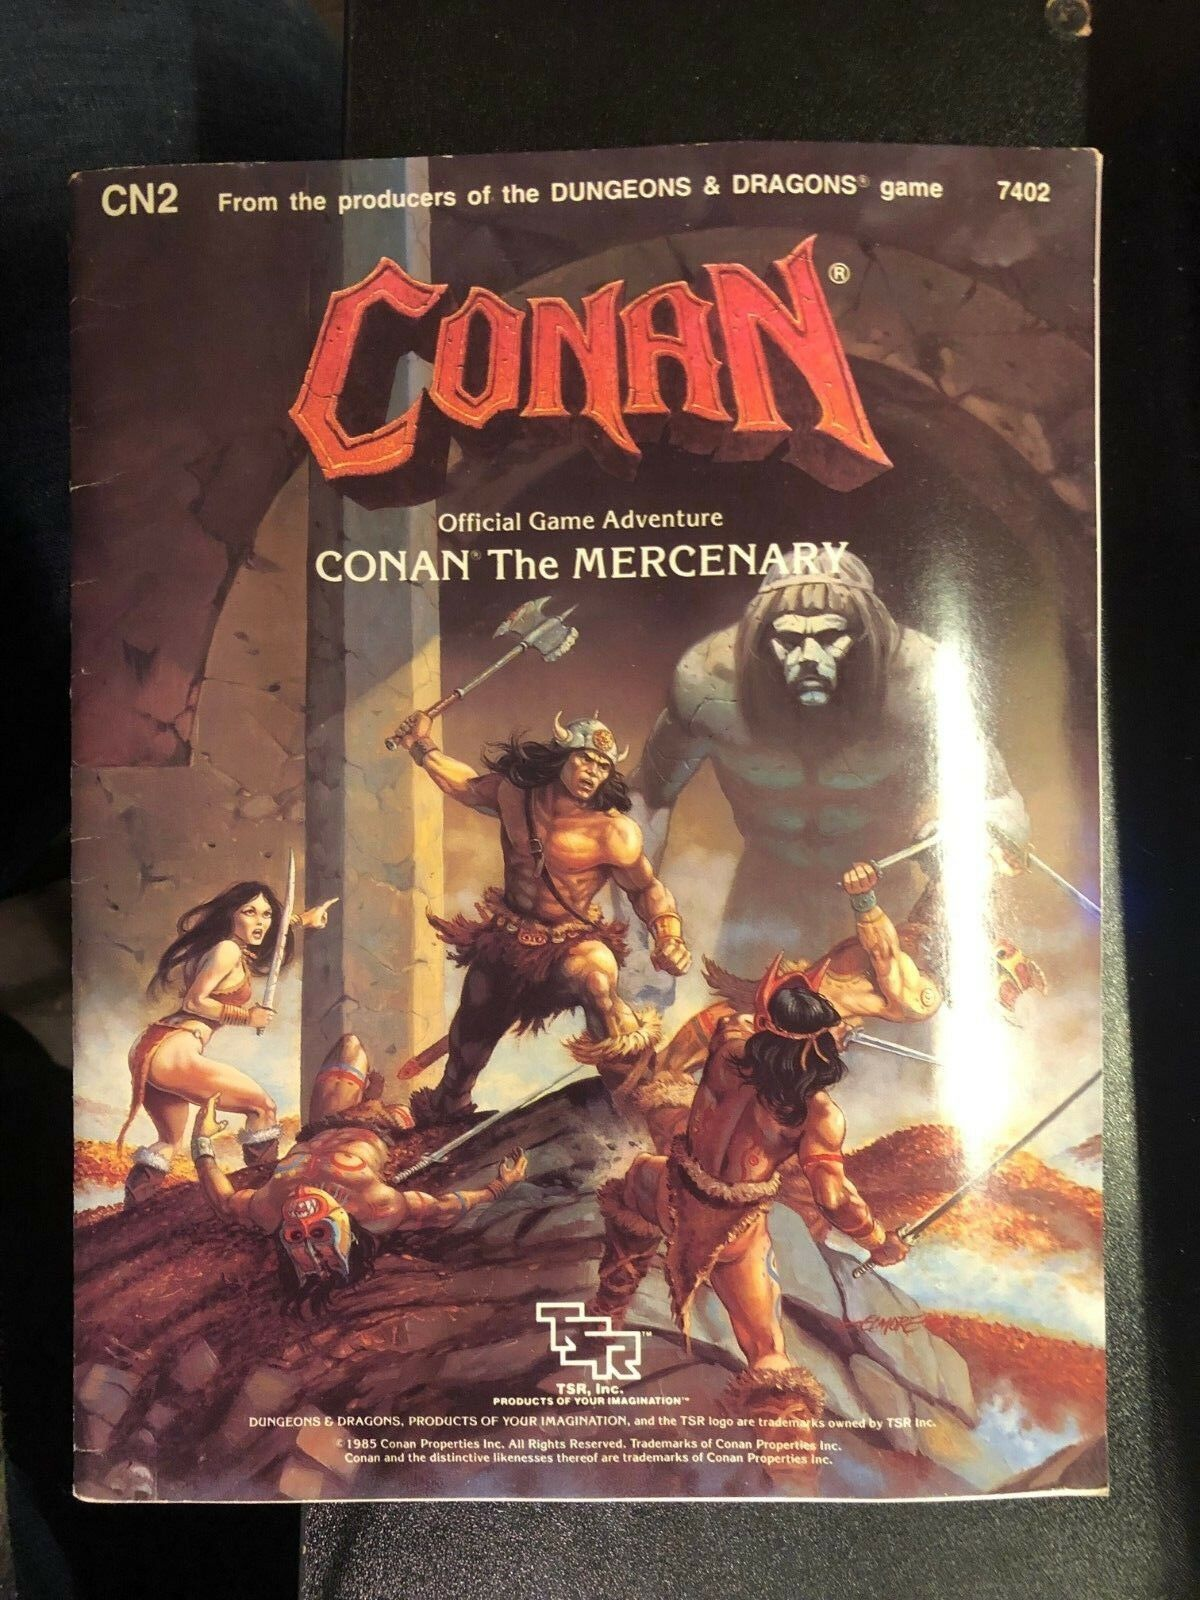 Conan the Mercenary: Module Cn2  Conan Game Adventure  Official Game Adventure